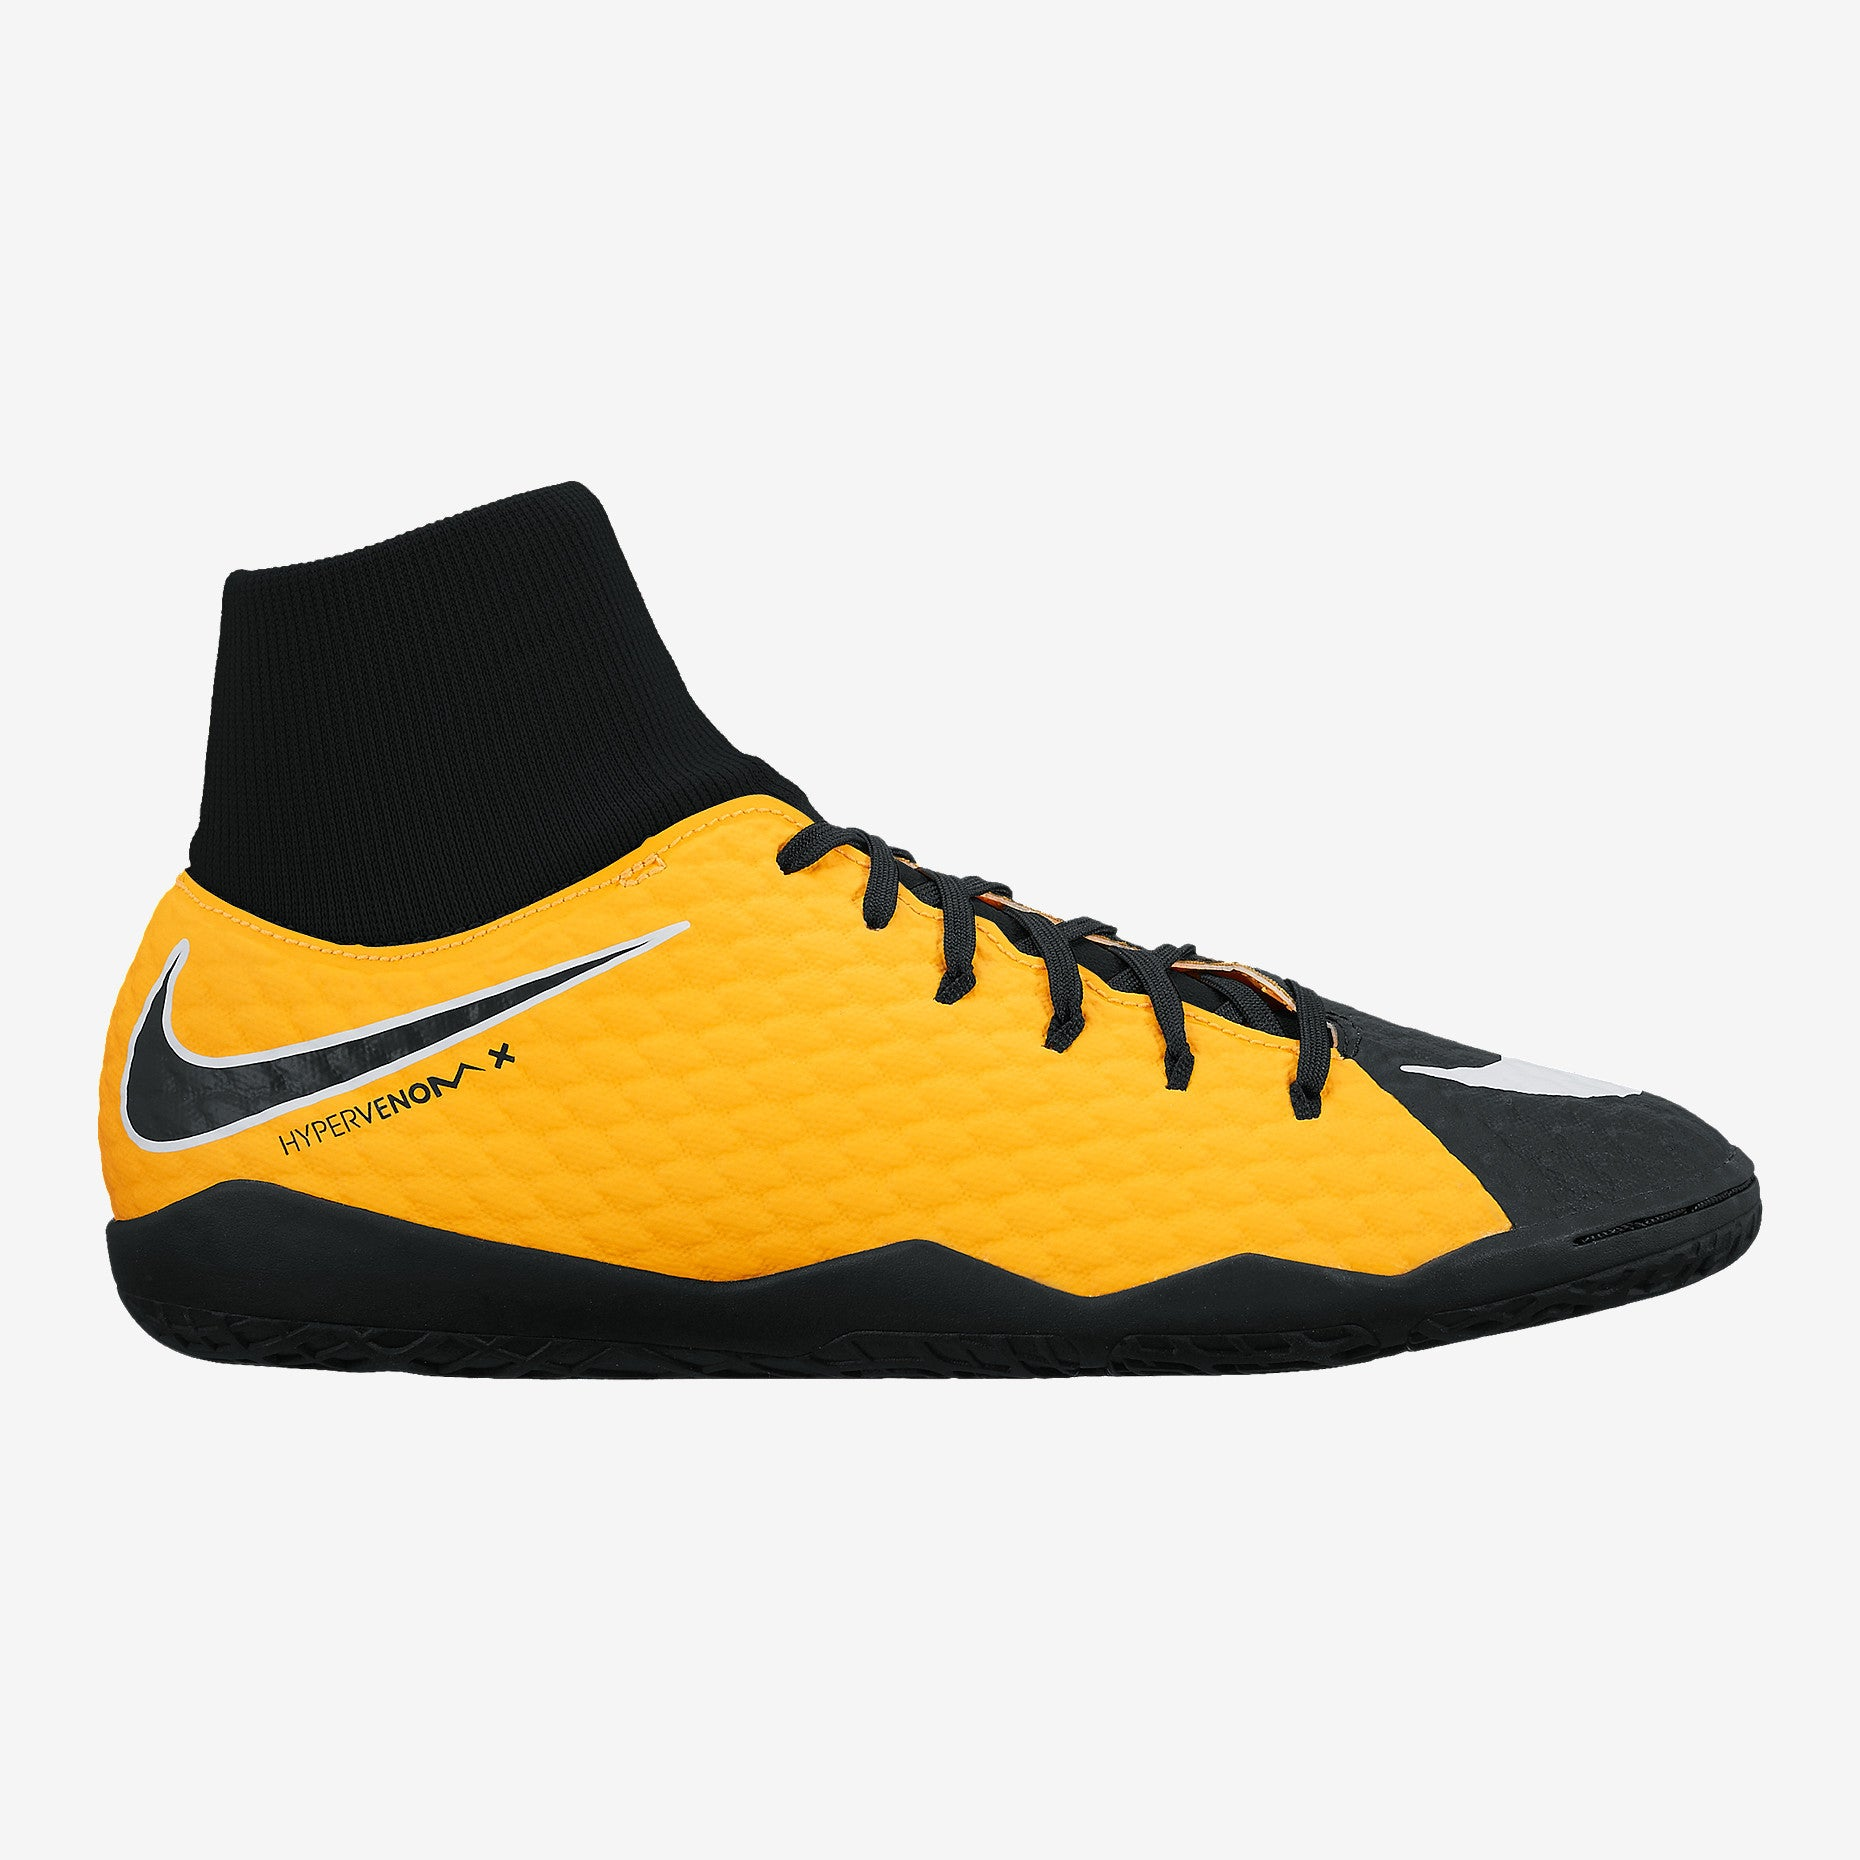 Nike HypervenomX Phelon III Dynamic Fit IC z0pM1CMAj8